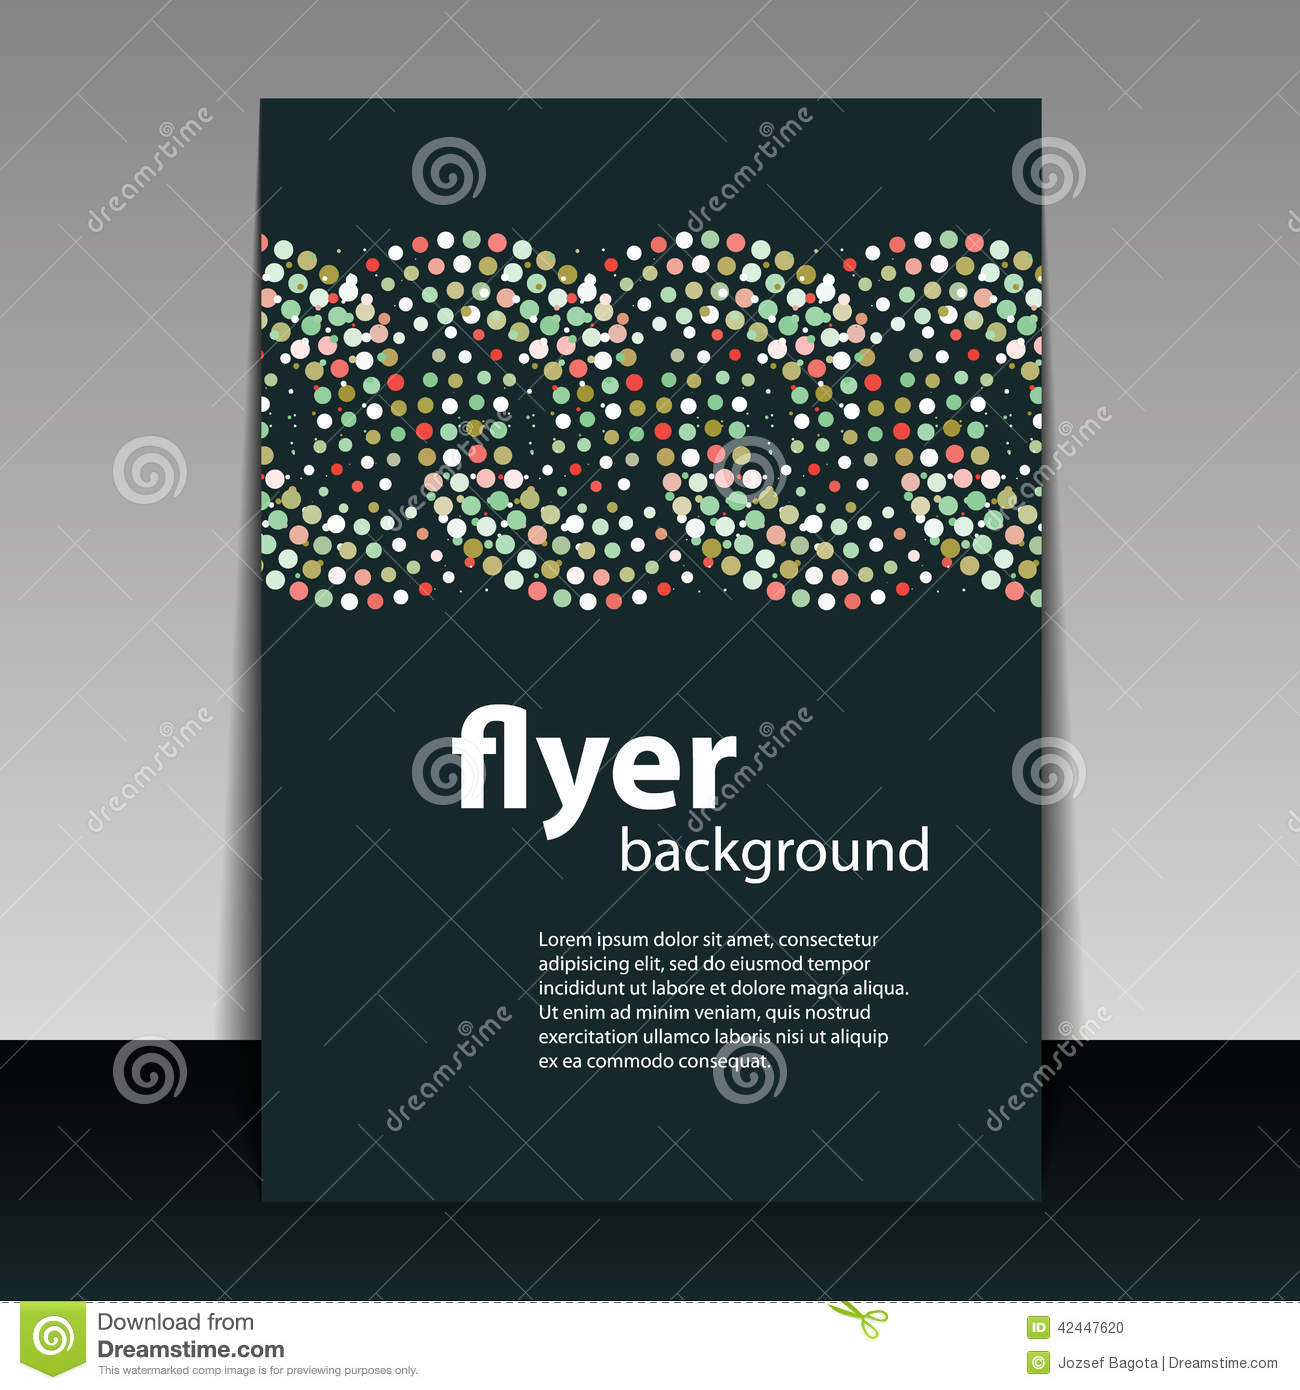 Book Cover Design Pattern : Flyer or cover design with circular dots pattern stock